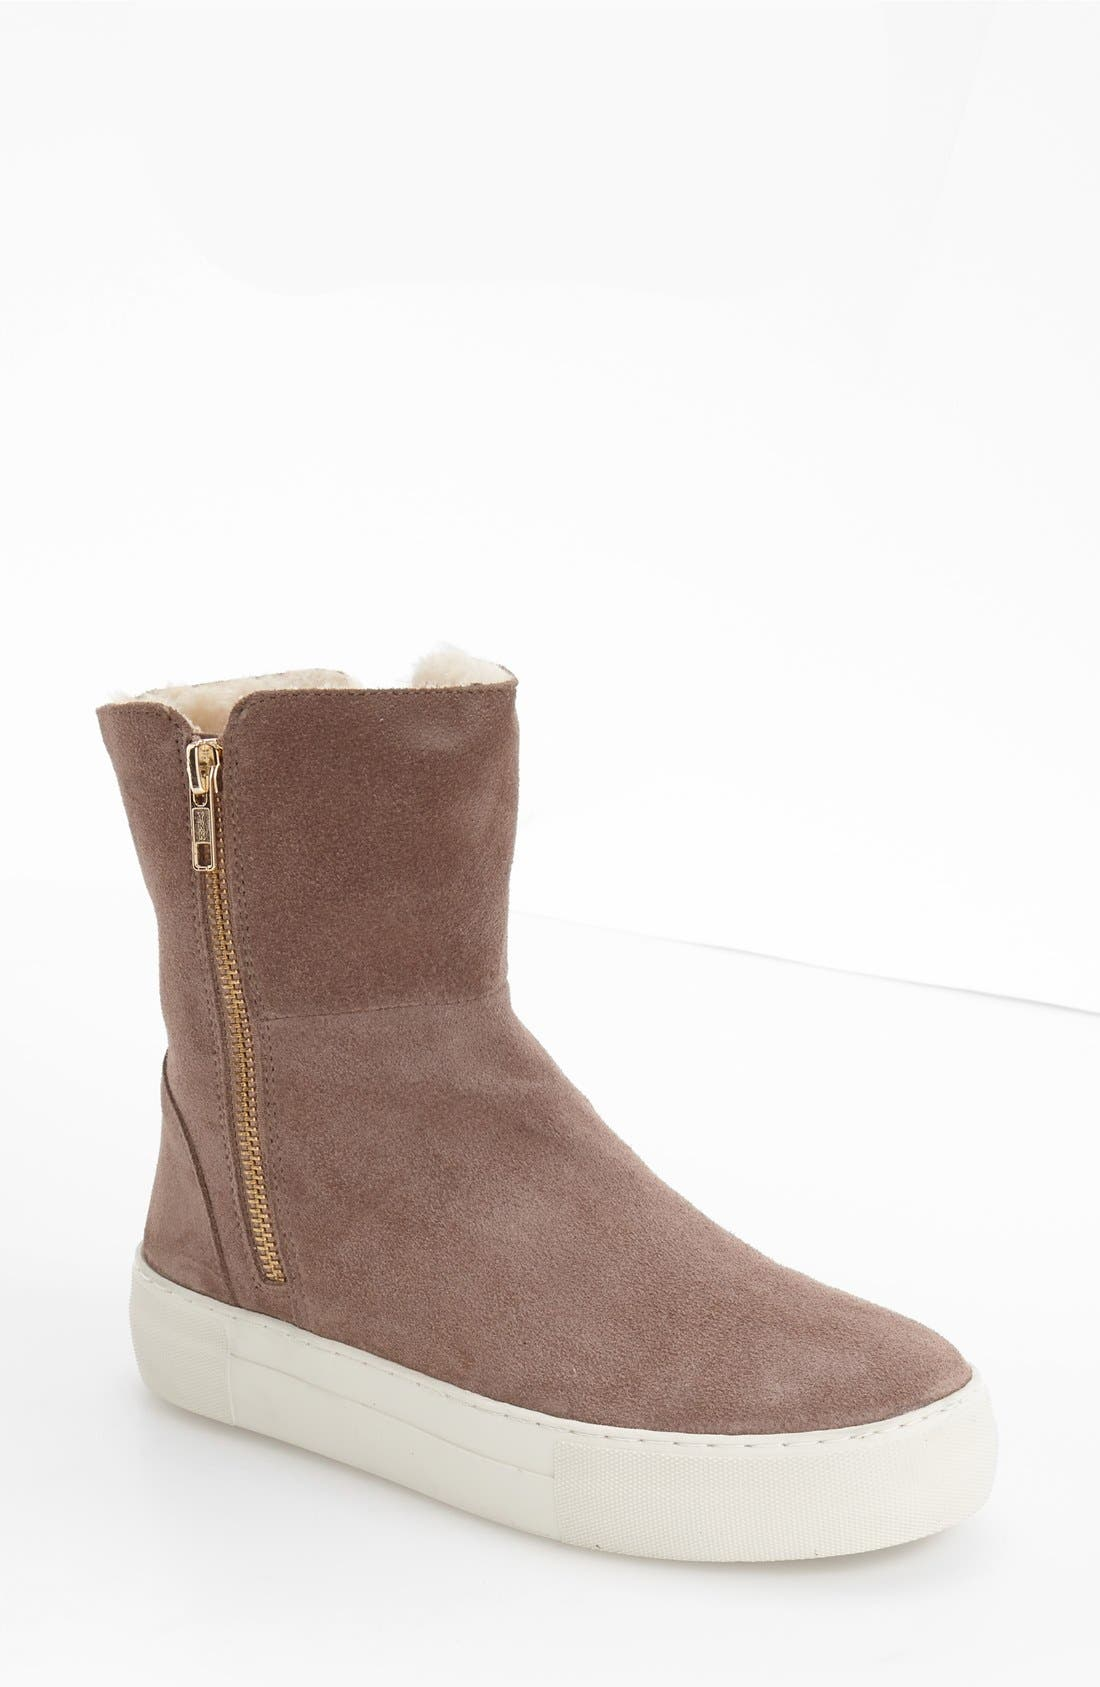 JSLIDES Allie Faux Fur Lined Platform Boot in Taupe